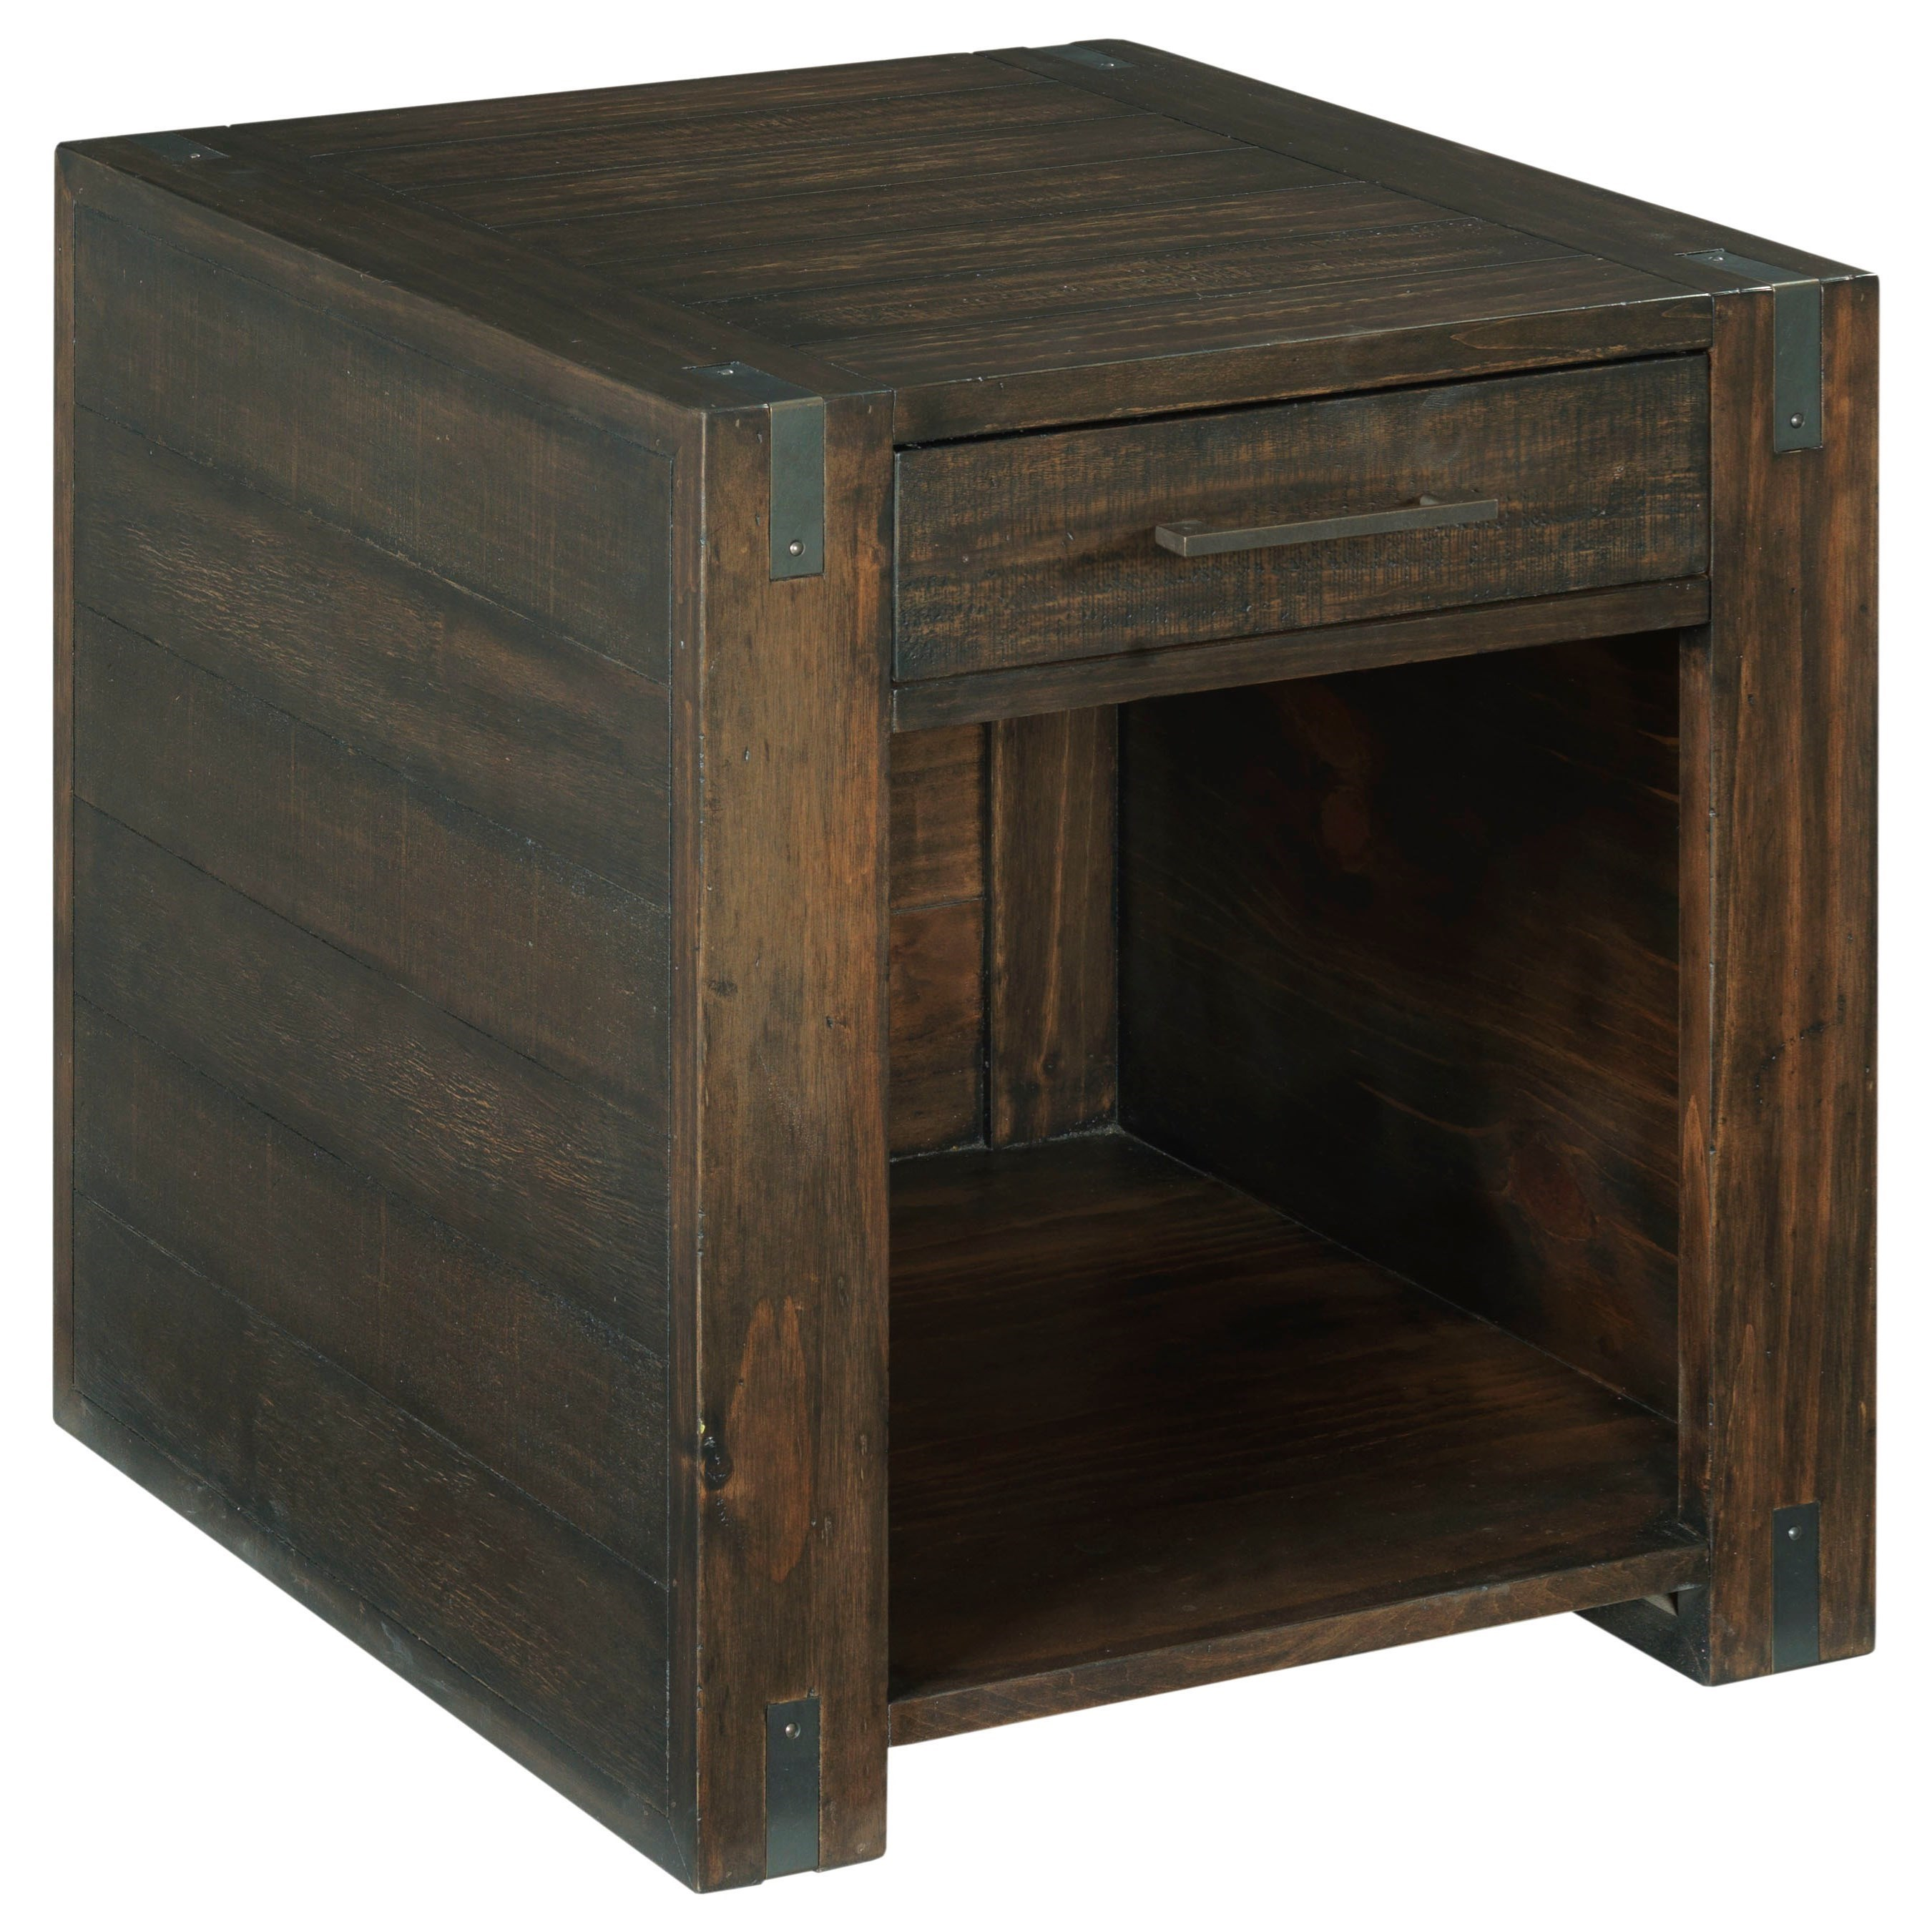 Portman Rectangular End Table by Hammary at Upper Room Home Furnishings